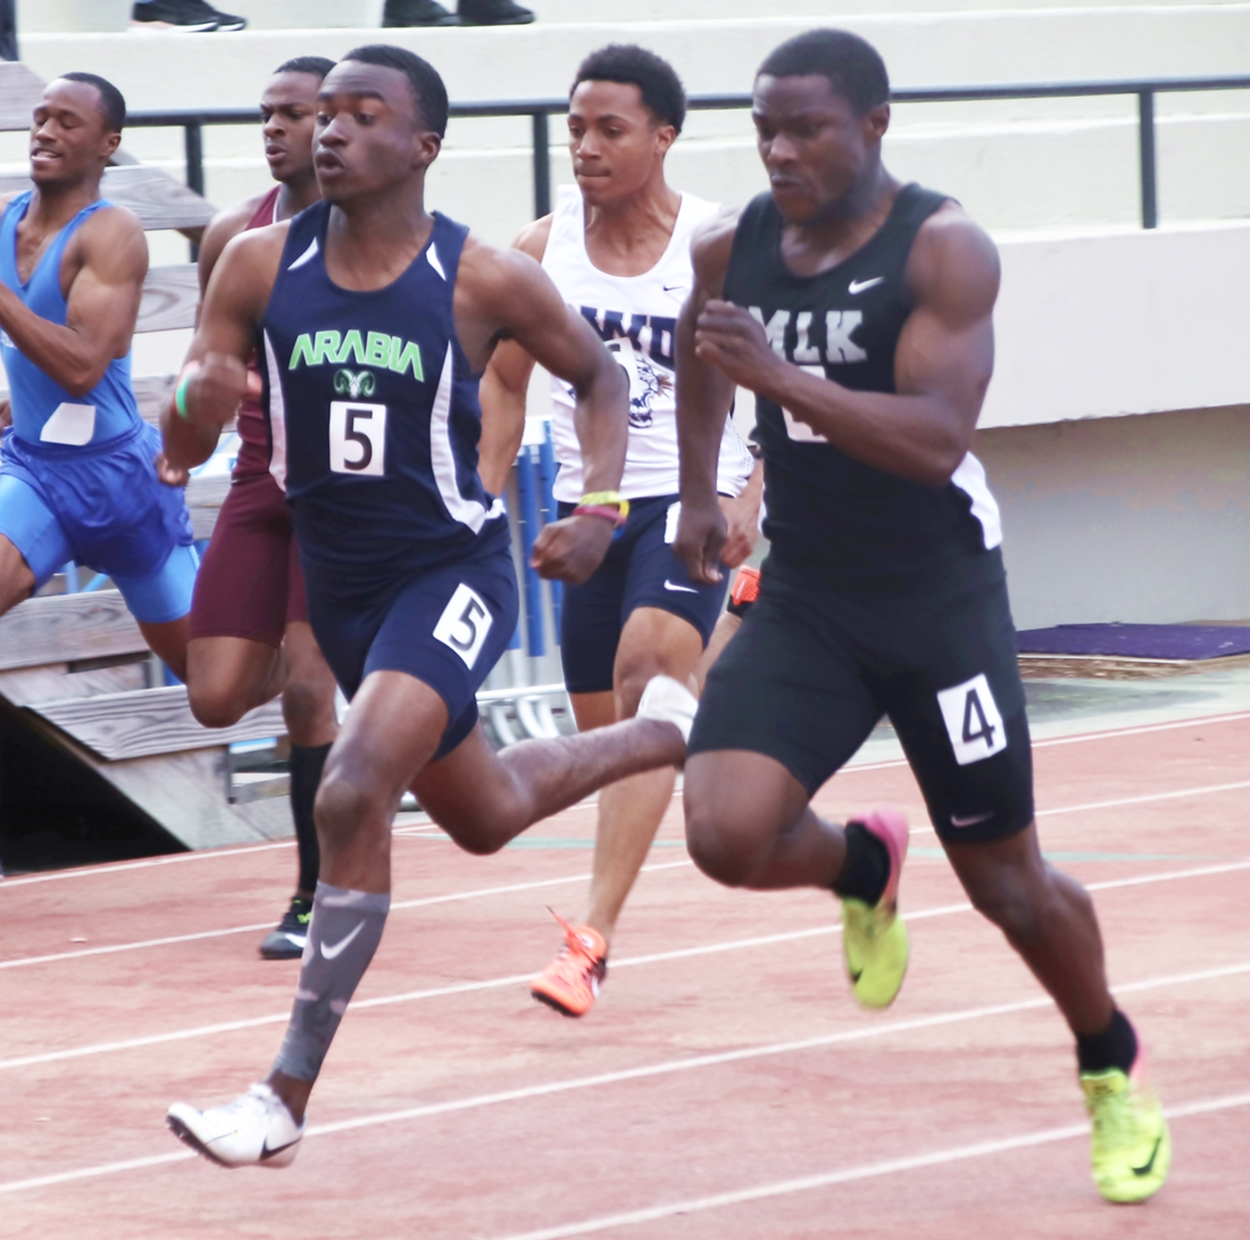 Arabia Mountain's Jordan Barrow (left) took gold in the 200m dash in Class 5A while Martin Luther King's Jhivon Wilson took a silver in the Class 6A 100m dash and a bronze in the 200m dash. (Photo by Mark Brock)